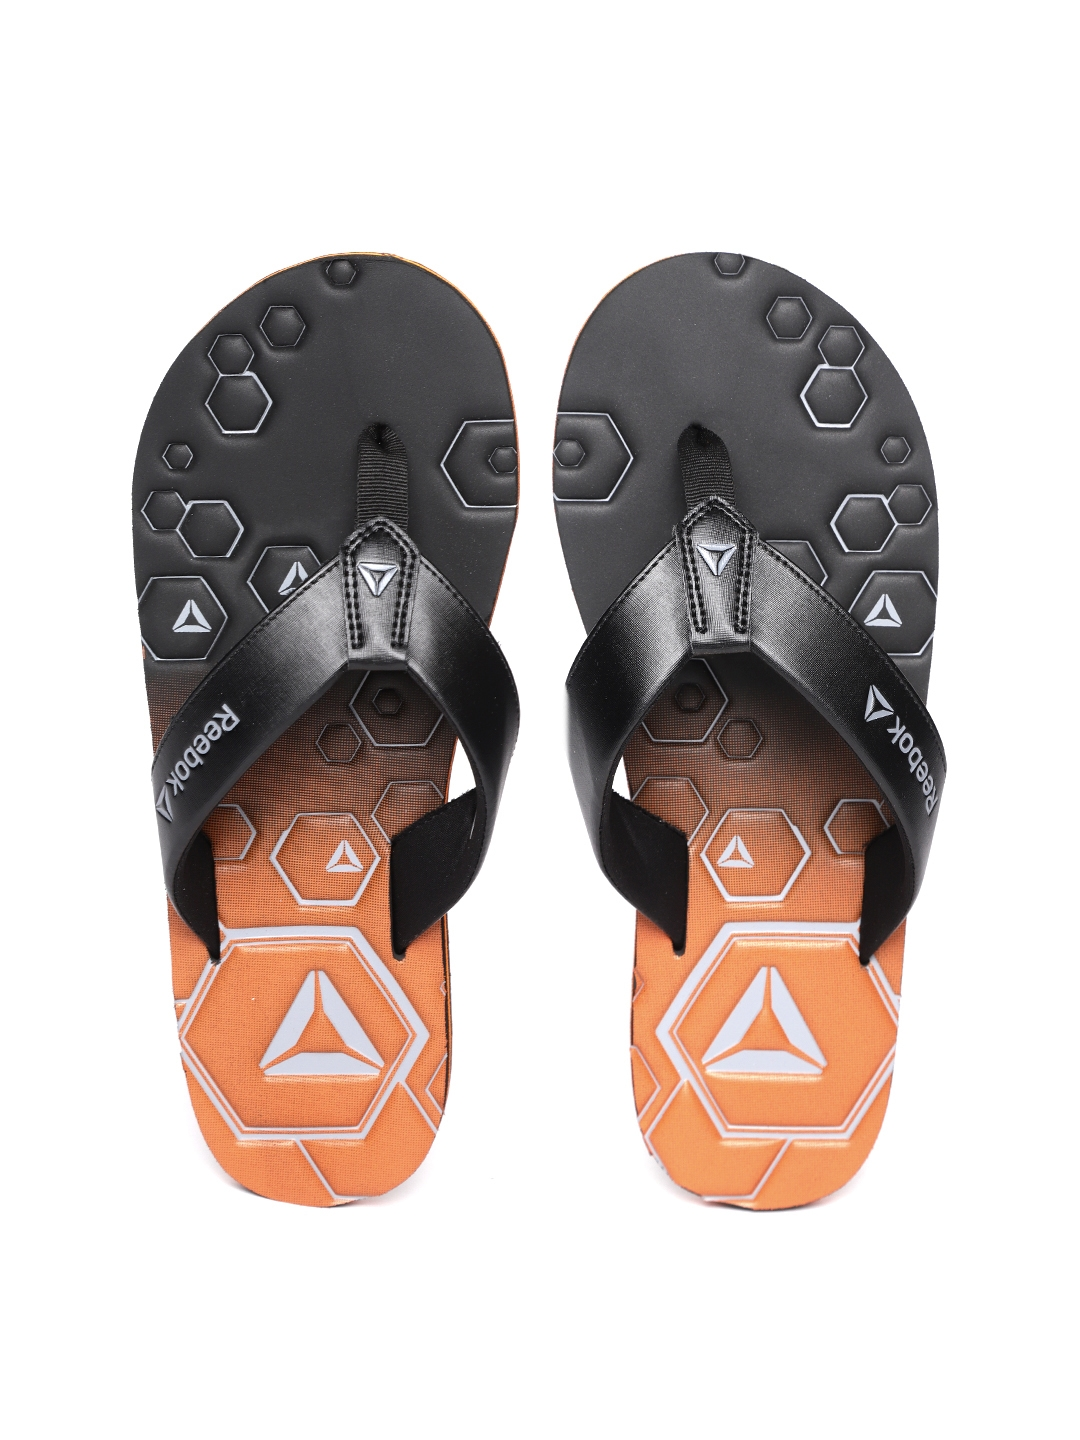 3c8421165 Buy Reebok Men Black   Orange Xtreme Printed Thong Flip Flops - Flip ...